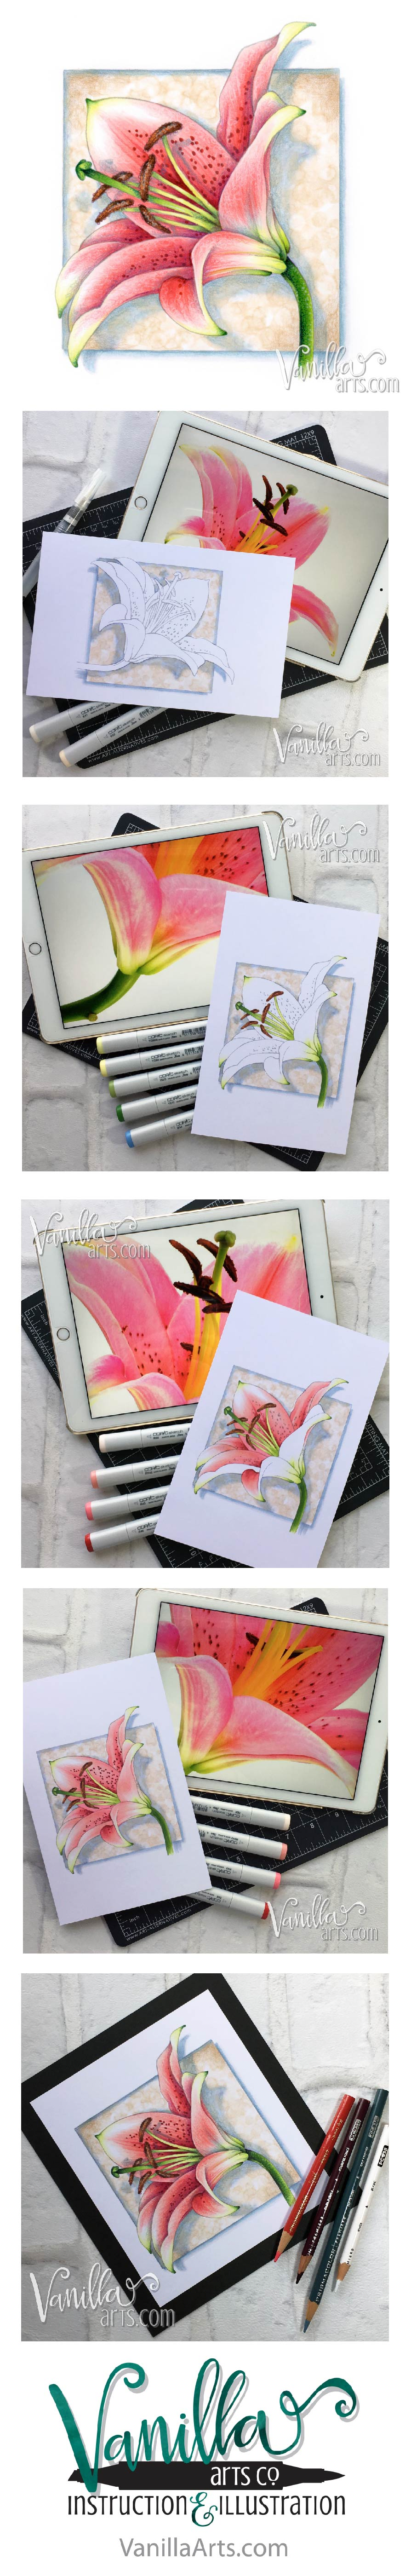 """Lily Blossom"" in Copic and Prismacolor pencil. Vanilla Arts digital stamps are designed especially for markers, colored pencils, and even watercolor! Wide open areas allow you the necessary space to blend and express your creativity. 